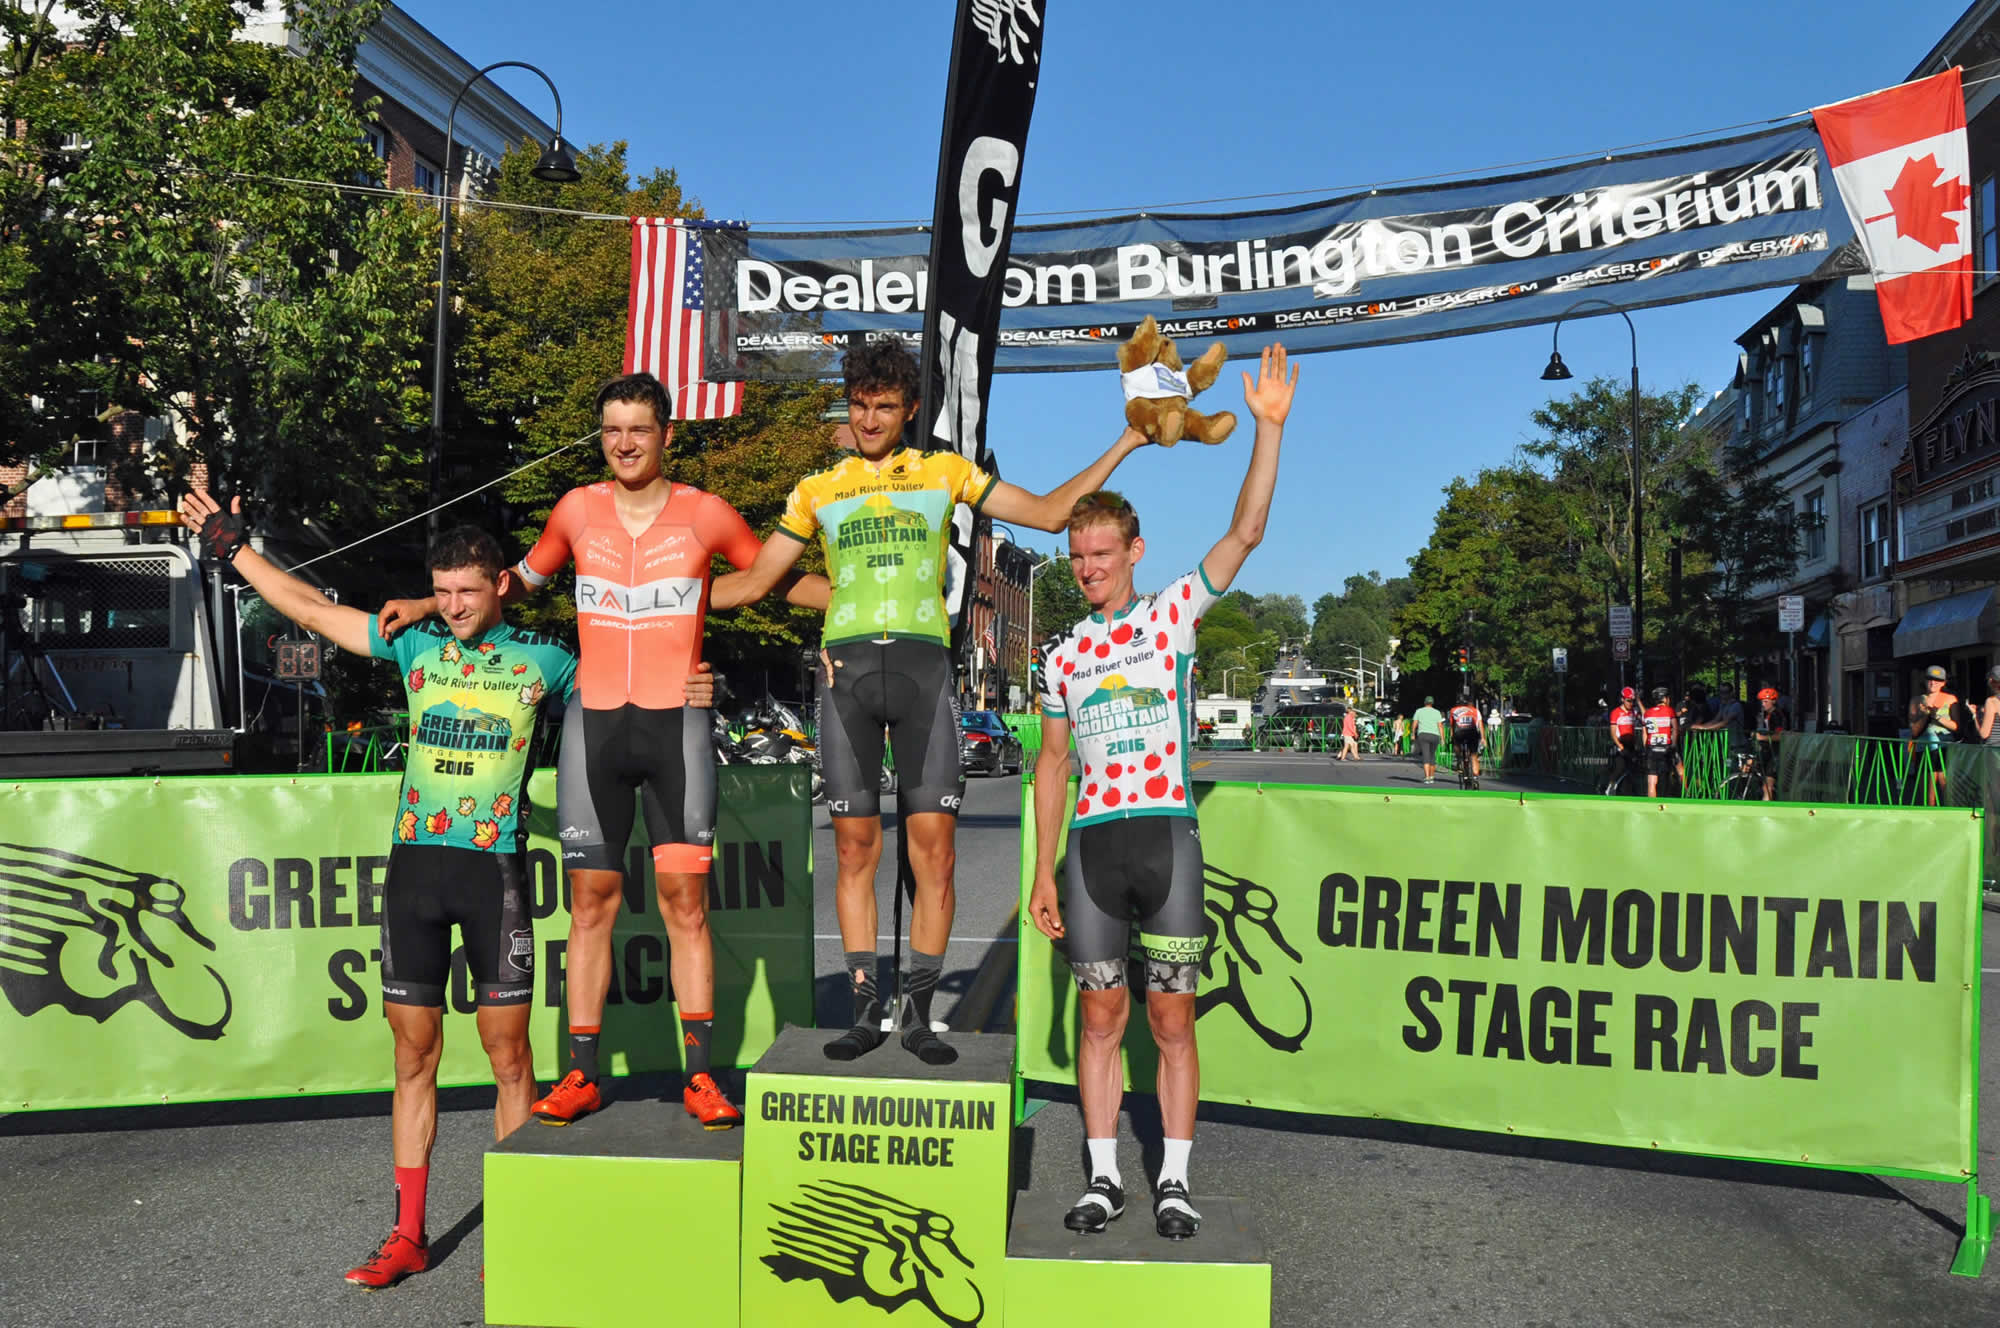 Awards ceremony with Inpodium, the podium of awarding prizes, in the Green Mountain Stage Race USA